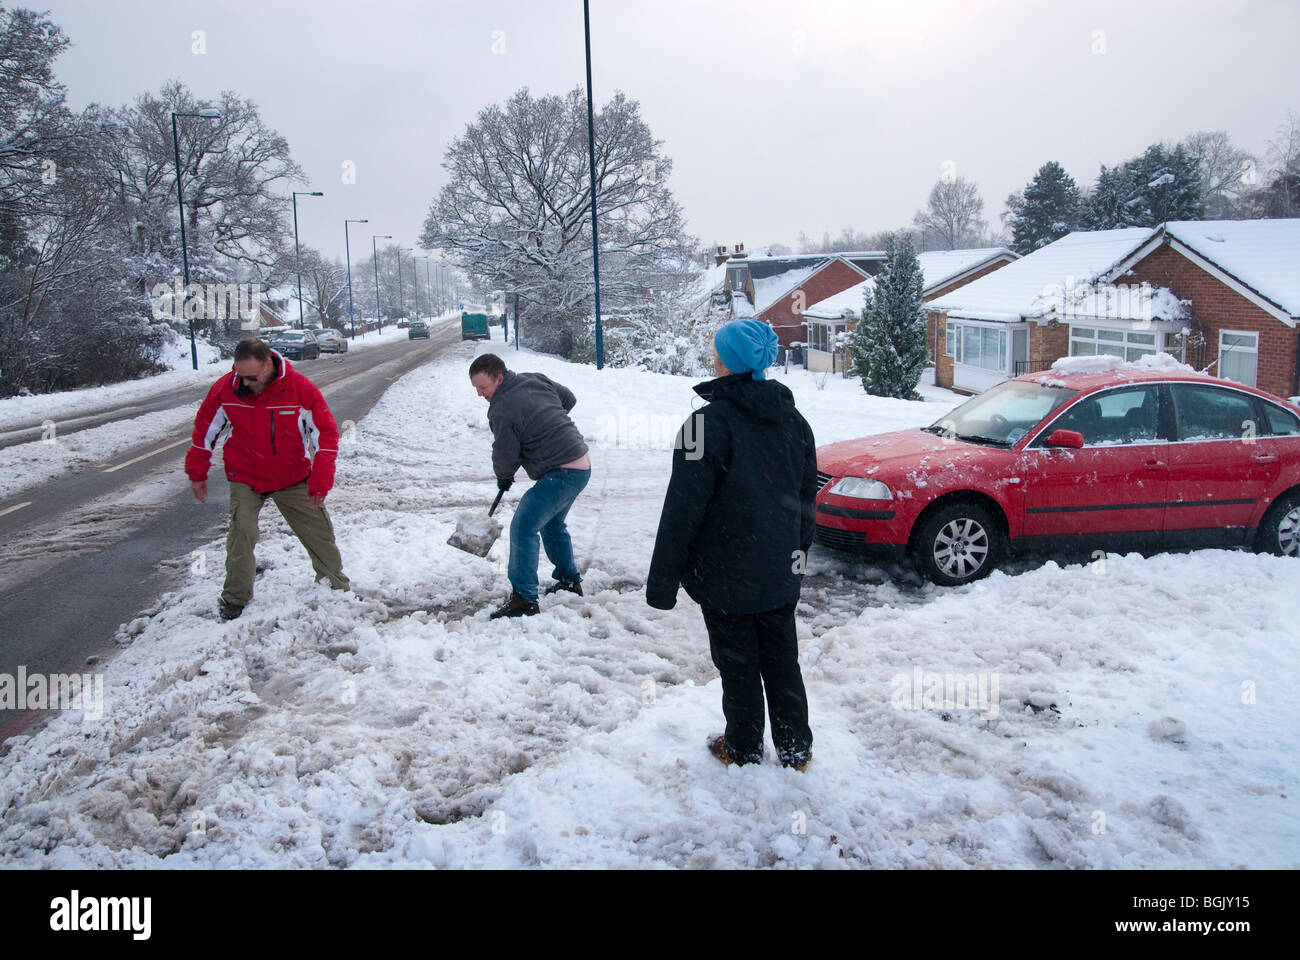 clearing snow to get stuck car to cleared main road. Major snow fall A3 area of hampshire january 2010 - Stock Image